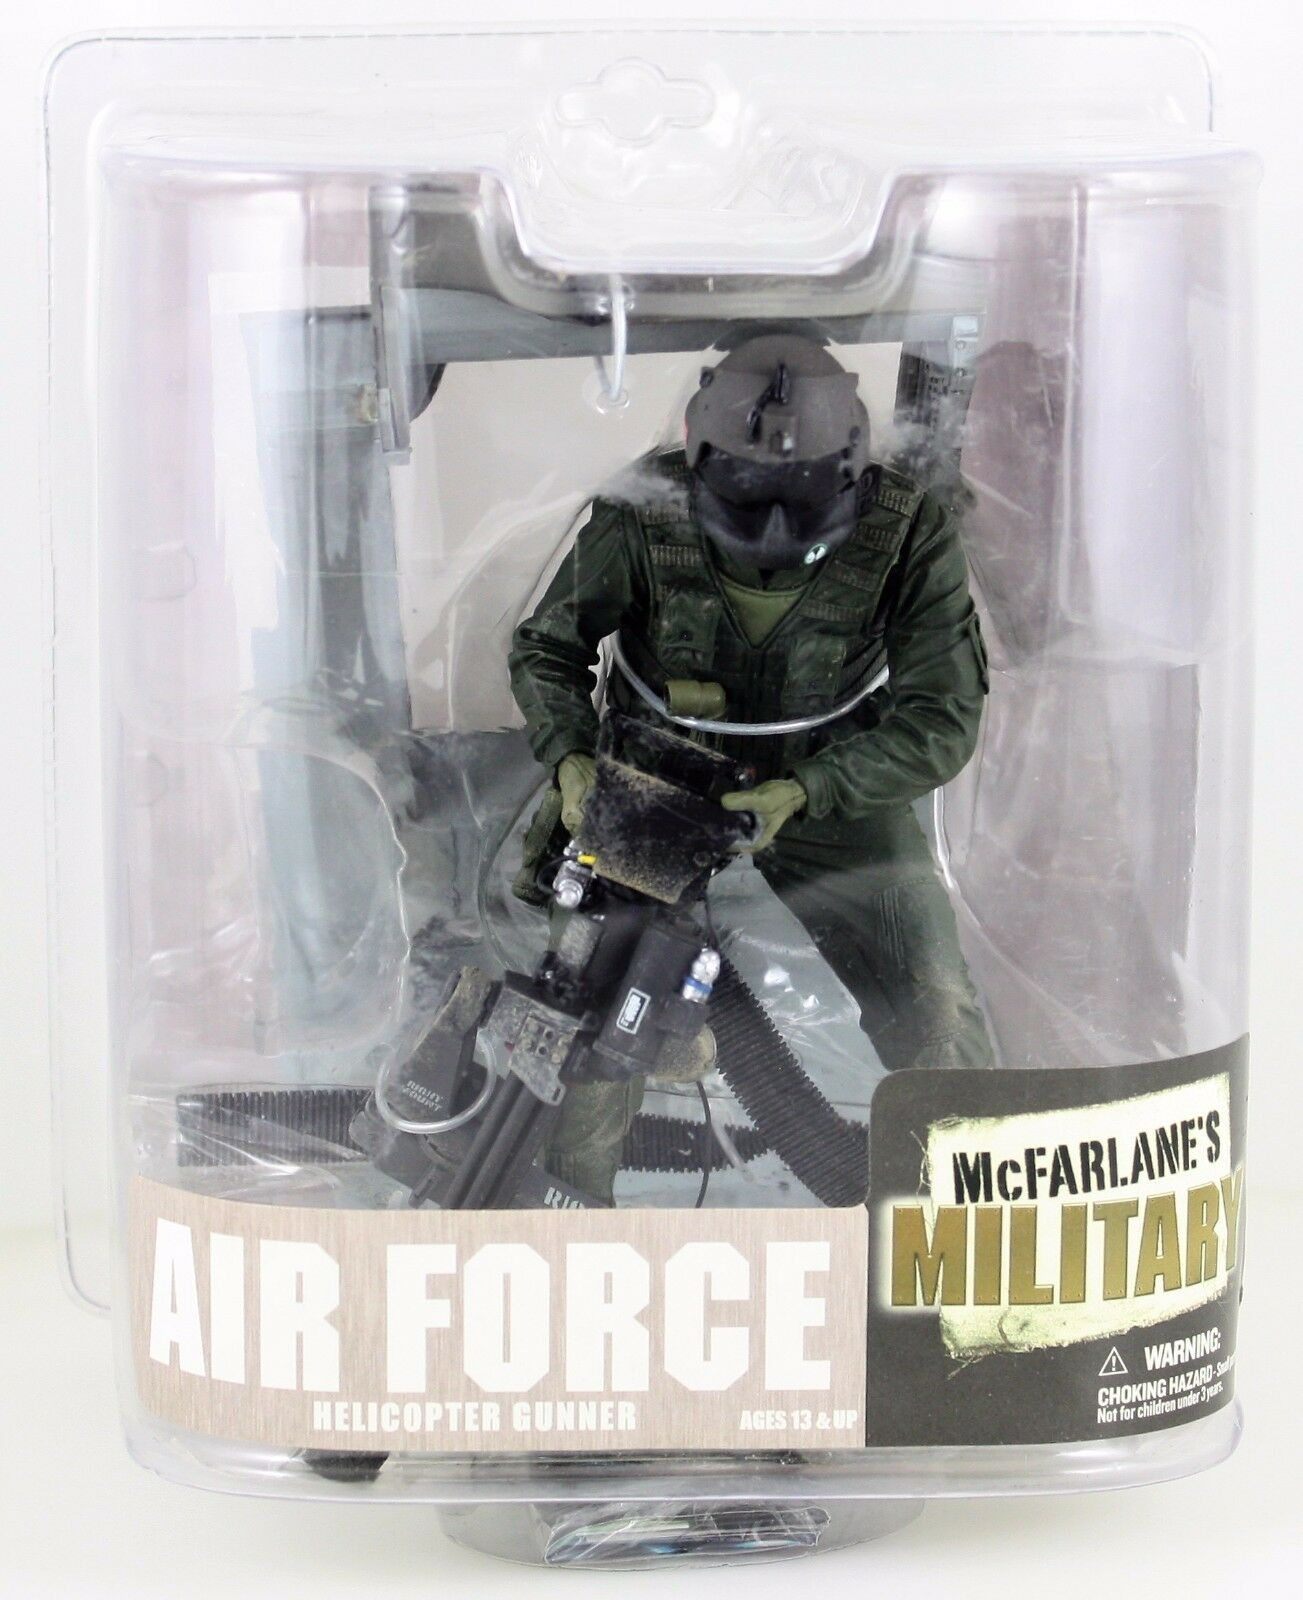 Mcfarlanes Military Air Force Helicopter Gunner Action Fig.w M134 Mini Gun NEW